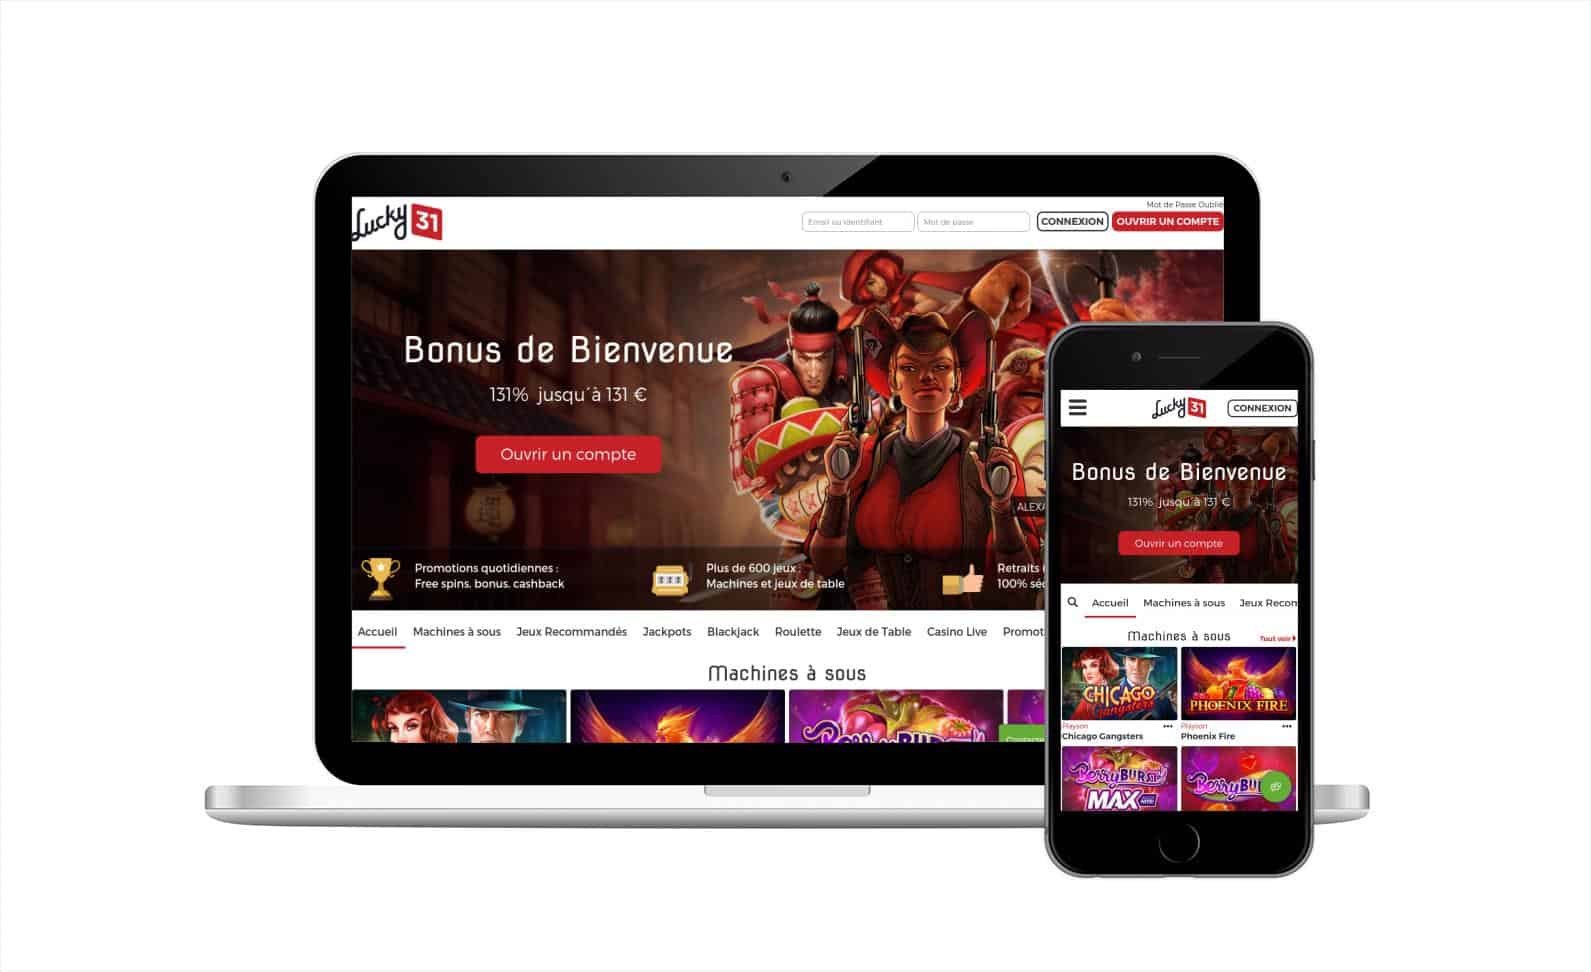 Casino lucky31 avis : un casino en ligne qui mérite l'attention